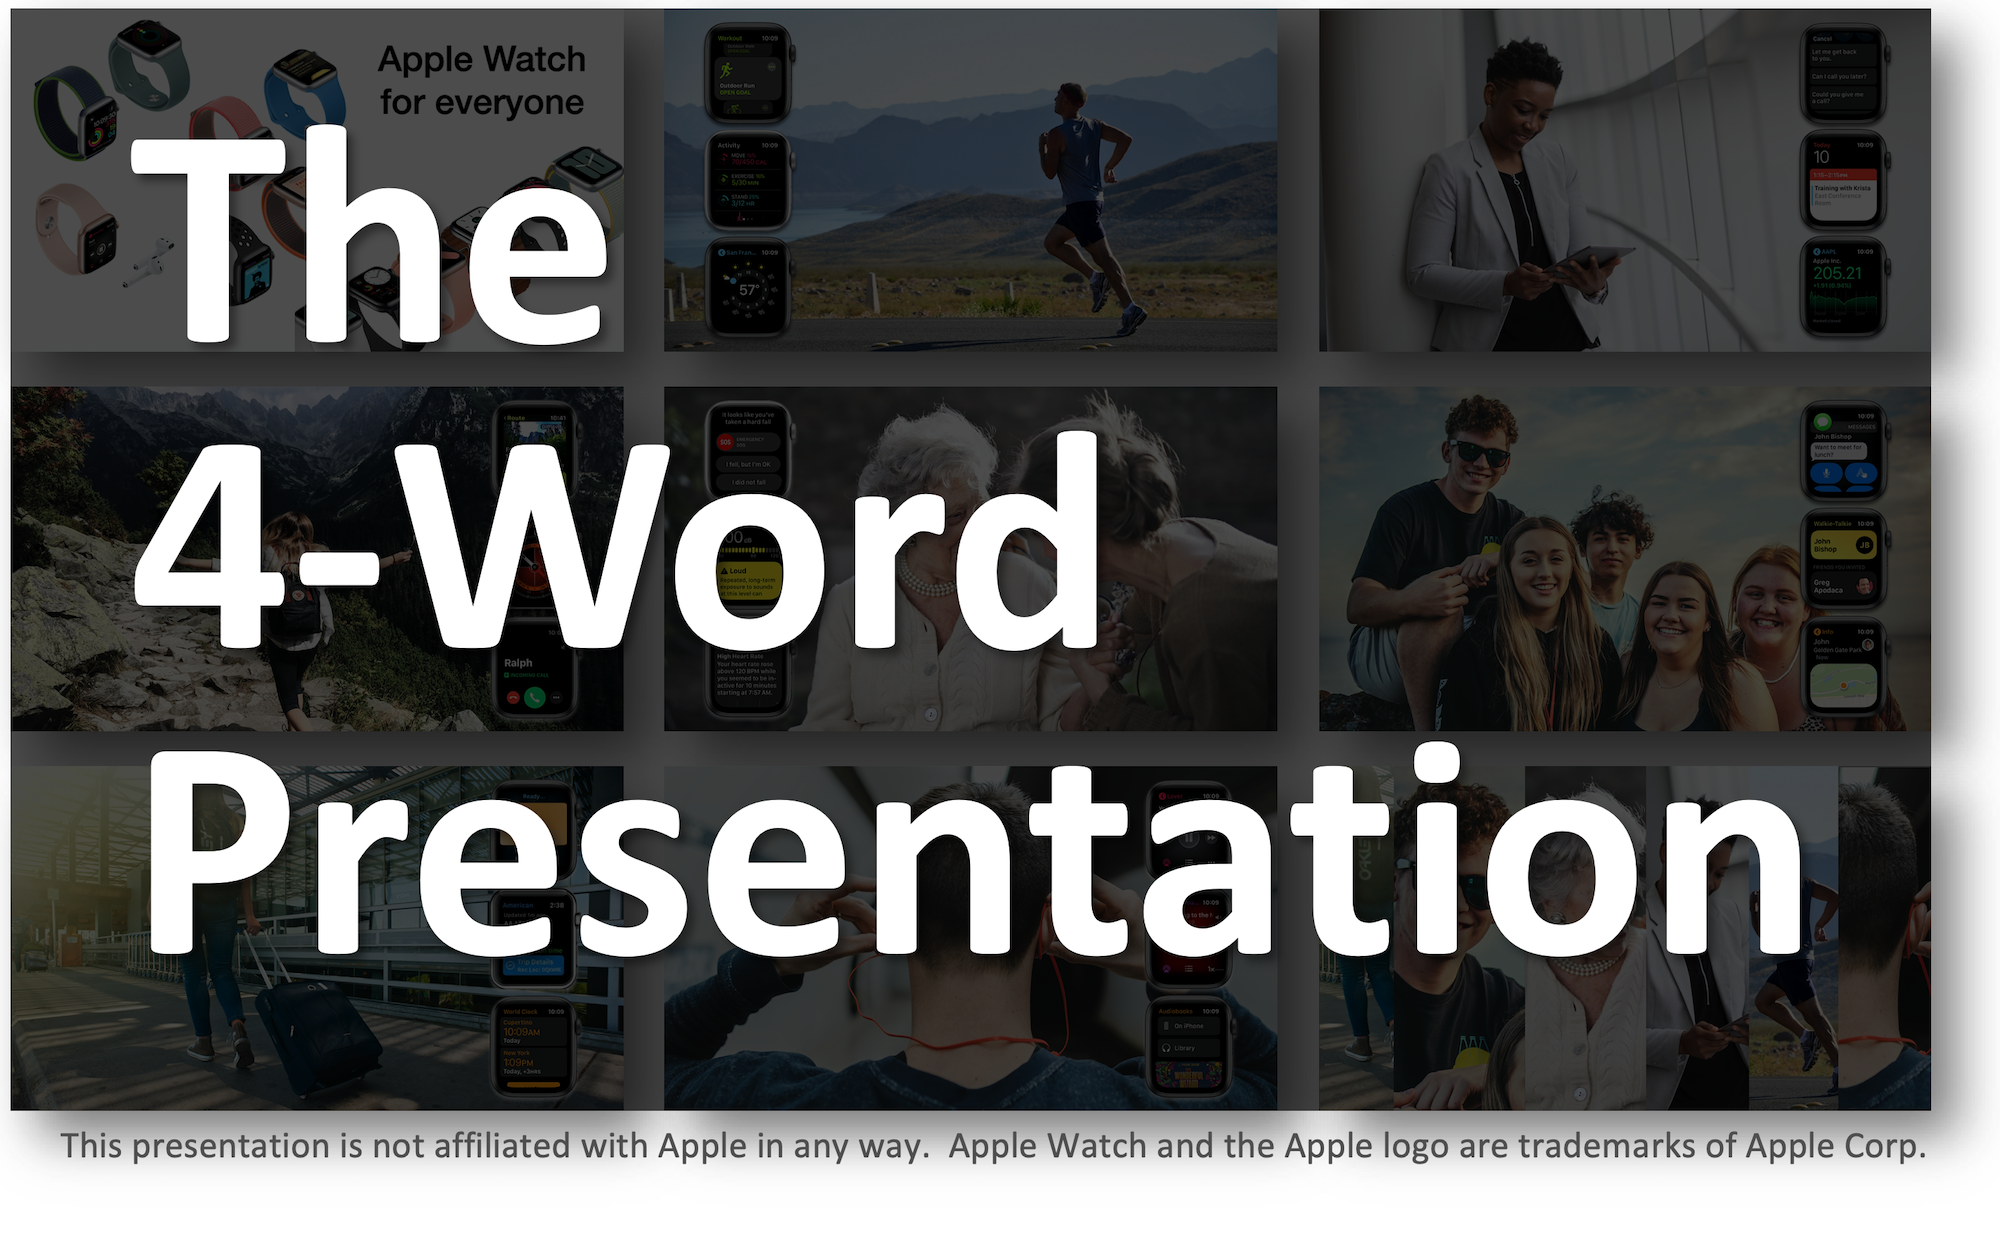 The 4-Word Presentation